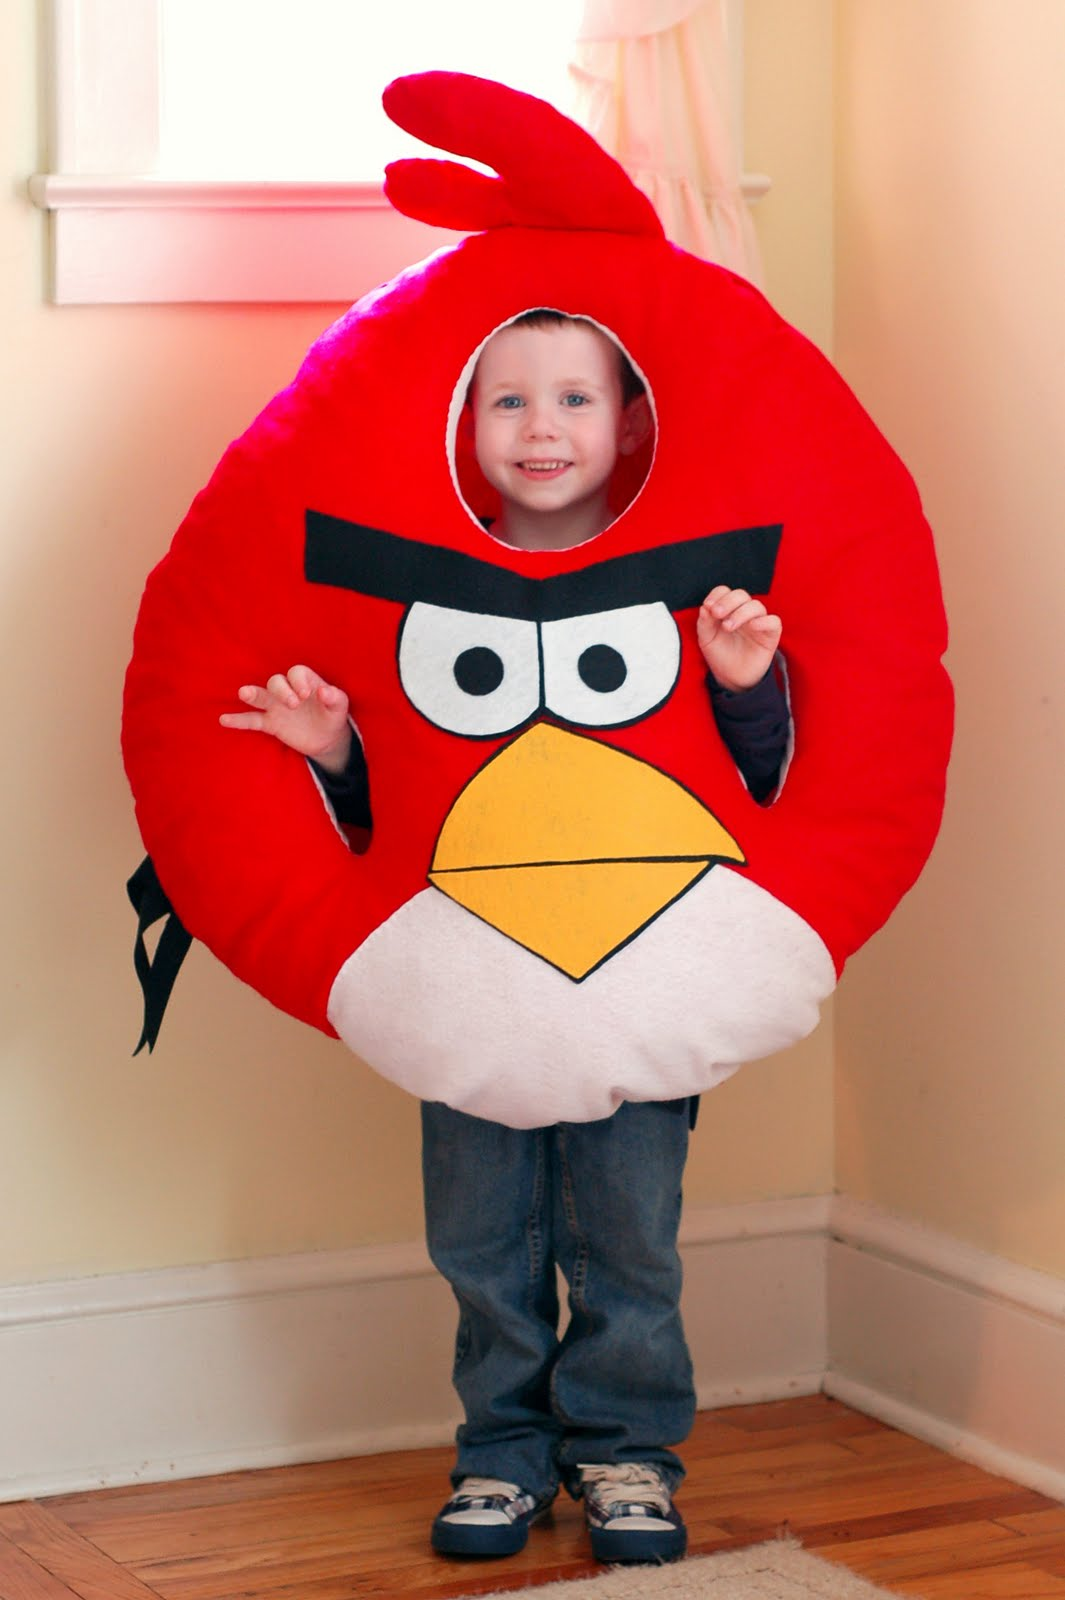 I'm the crazy lady with all the babies: Homemade Angry Birds ...